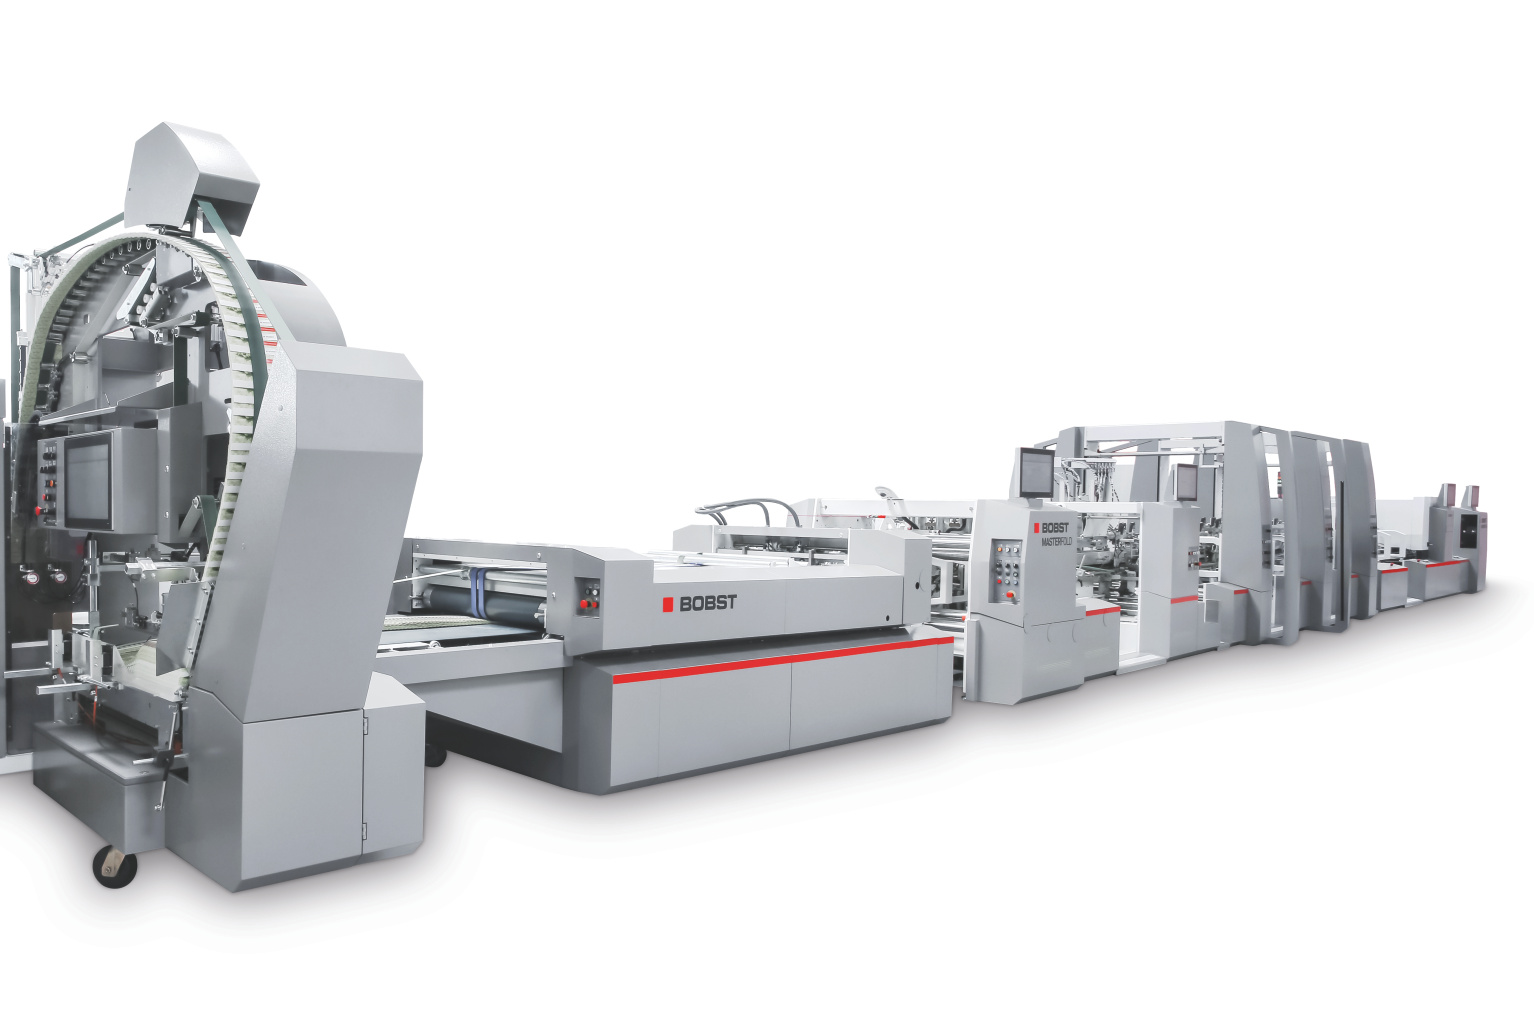 Graphic Packaging International (GPI) expands manufacturing facility with new machinery